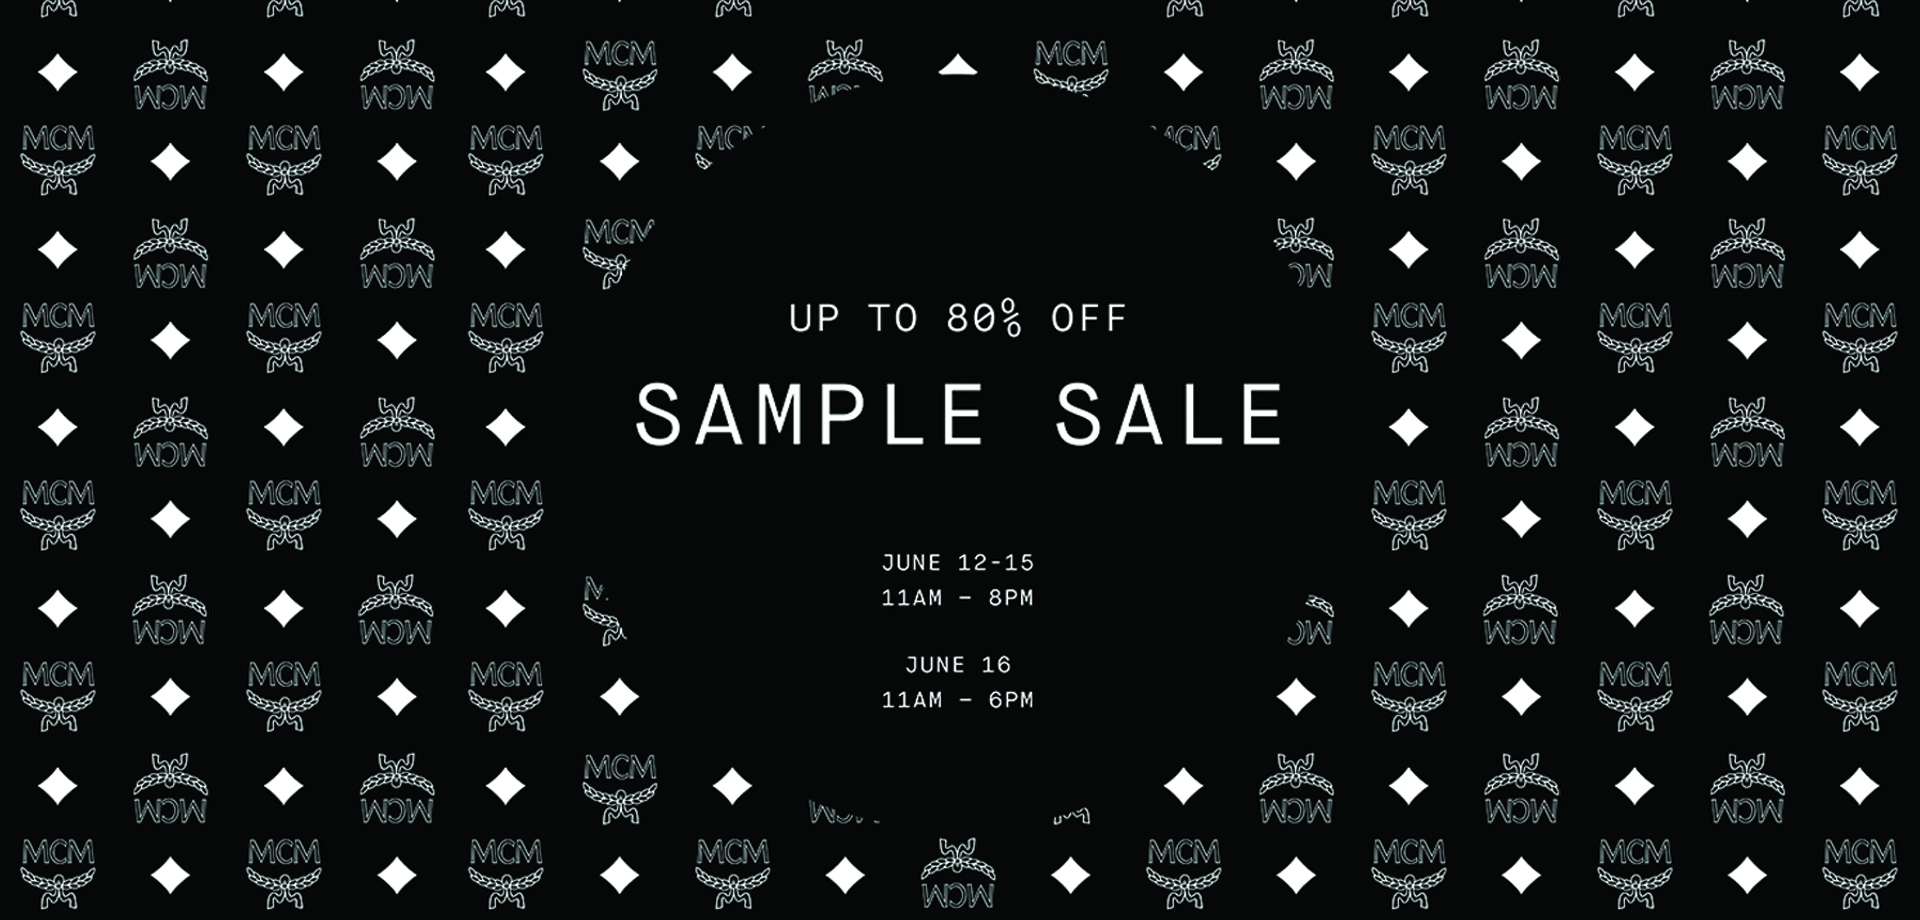 BANNER_MCM-Sample-Sale_260NY_JUNE-2019.jpg